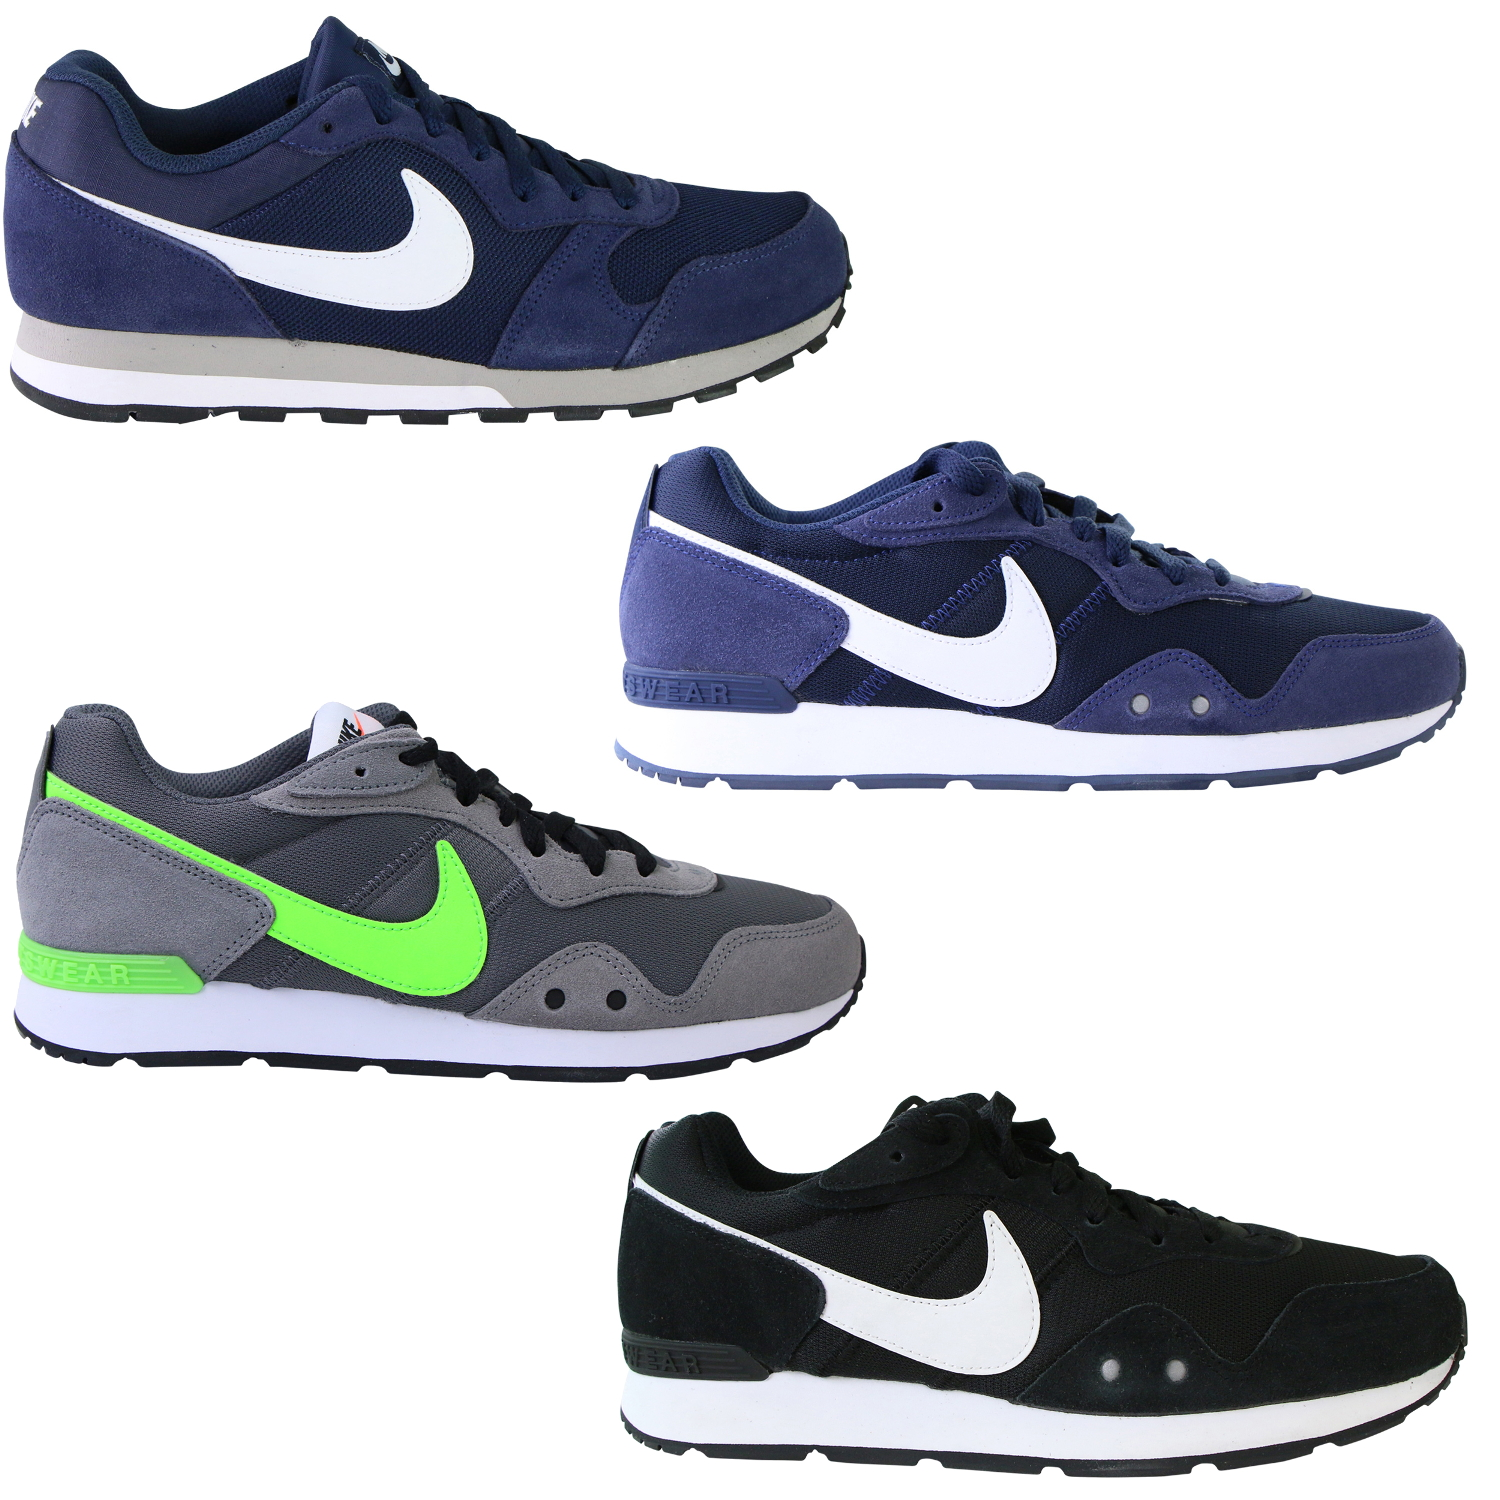 nike md runner 2 schuhe sneaker turnschuhe herren. Black Bedroom Furniture Sets. Home Design Ideas